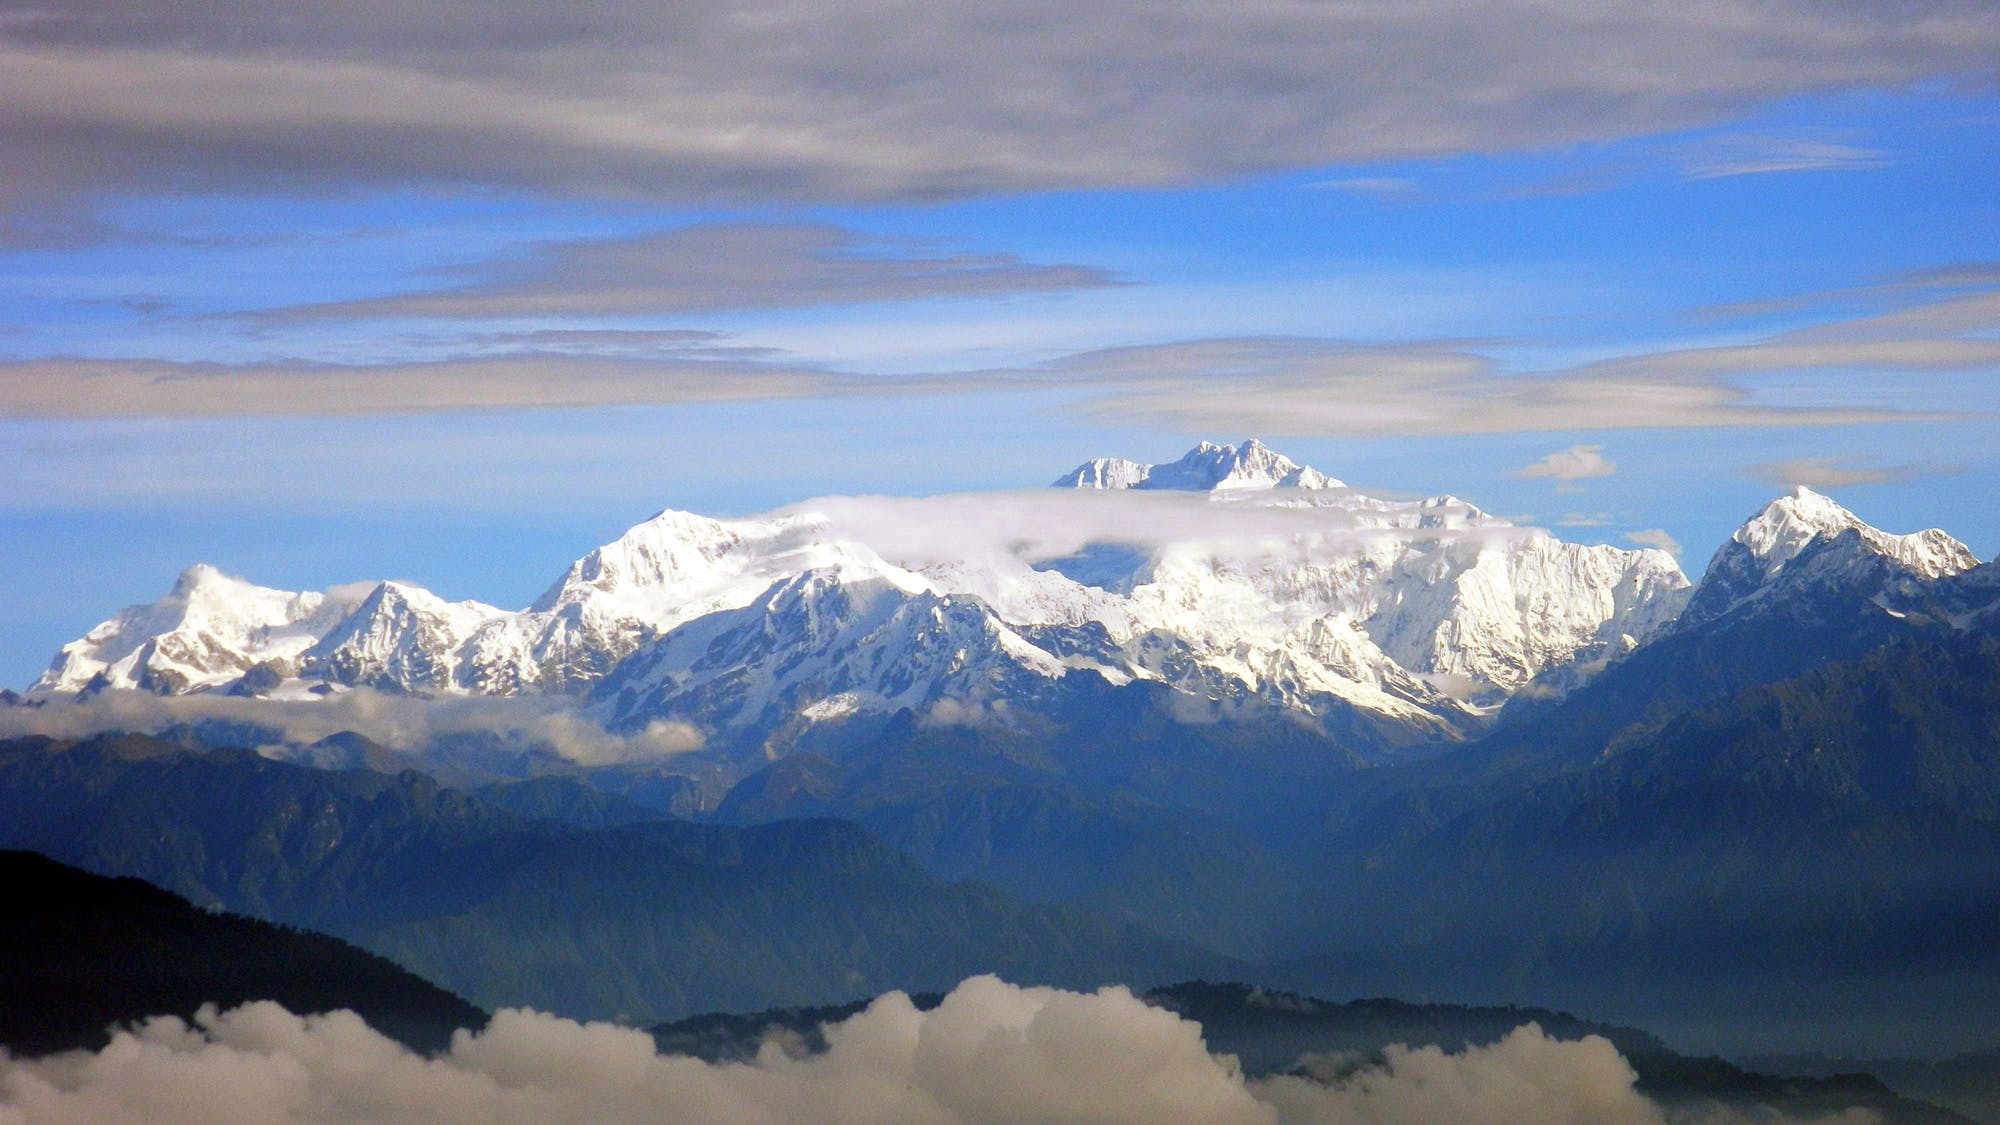 Free stock photo of Kangchenjunga, Mount Kangchenjunga